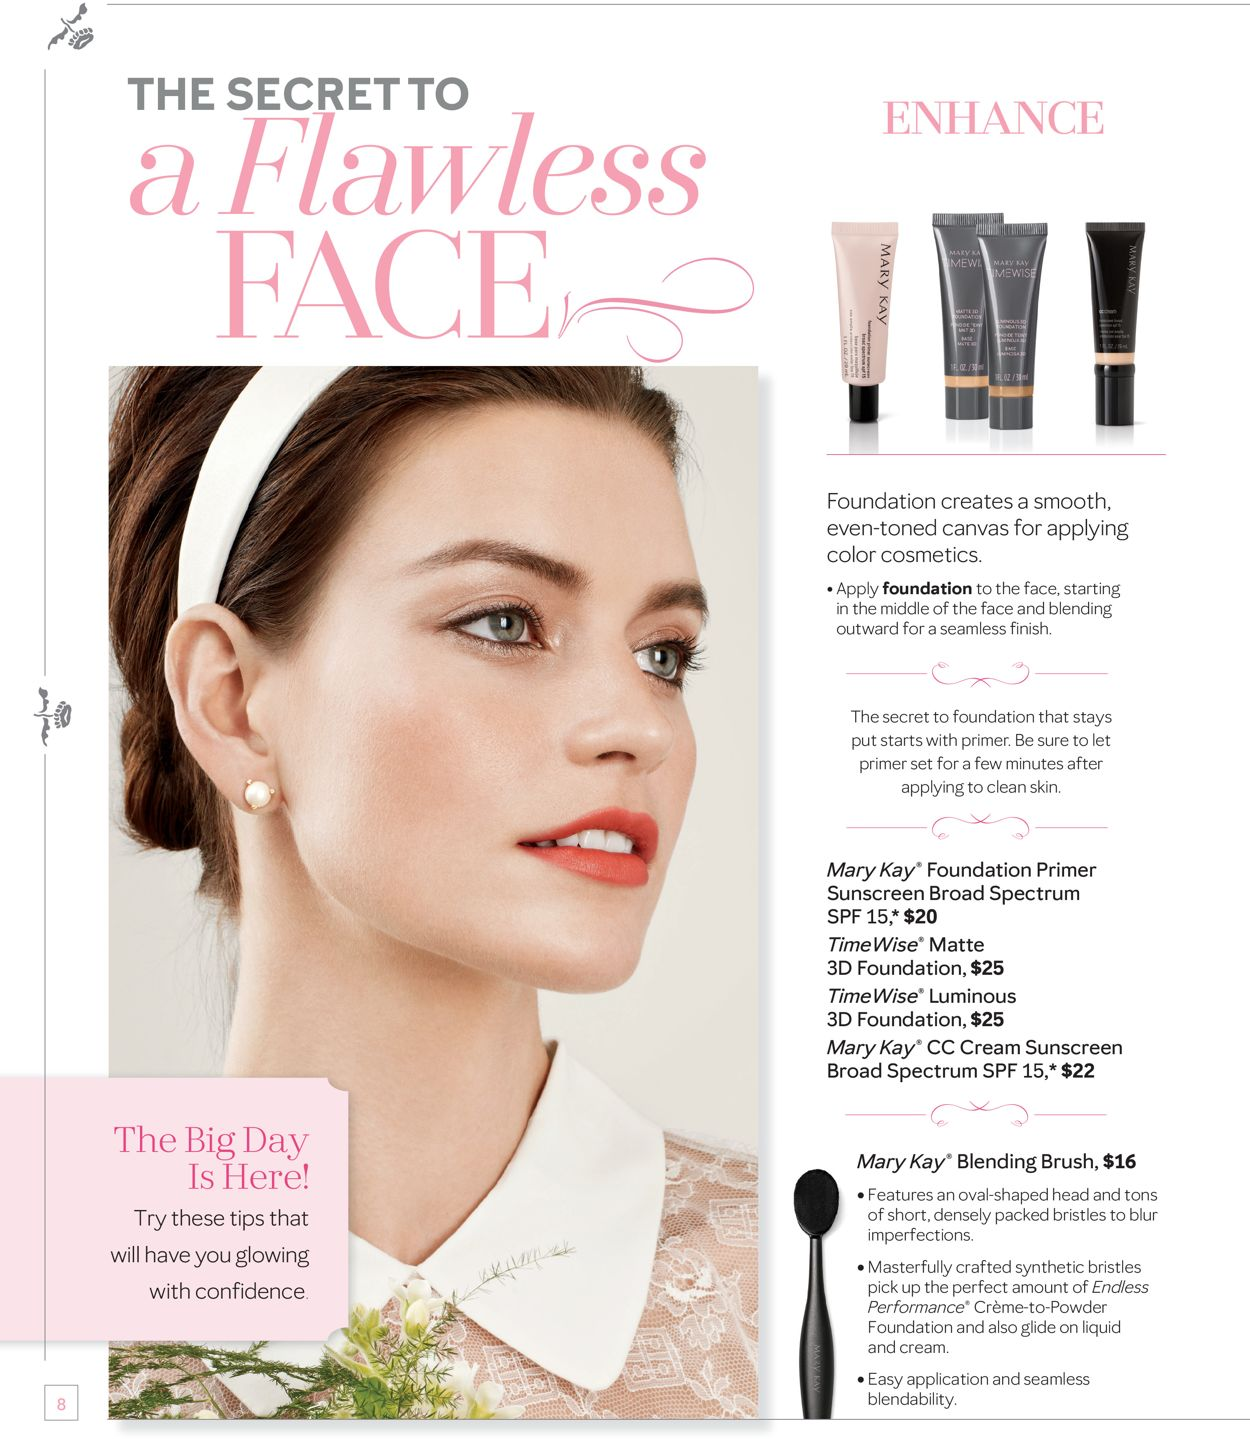 Mary Kay Current Weekly Ad 11 13 12 31 2019 8 Frequent Ads Com